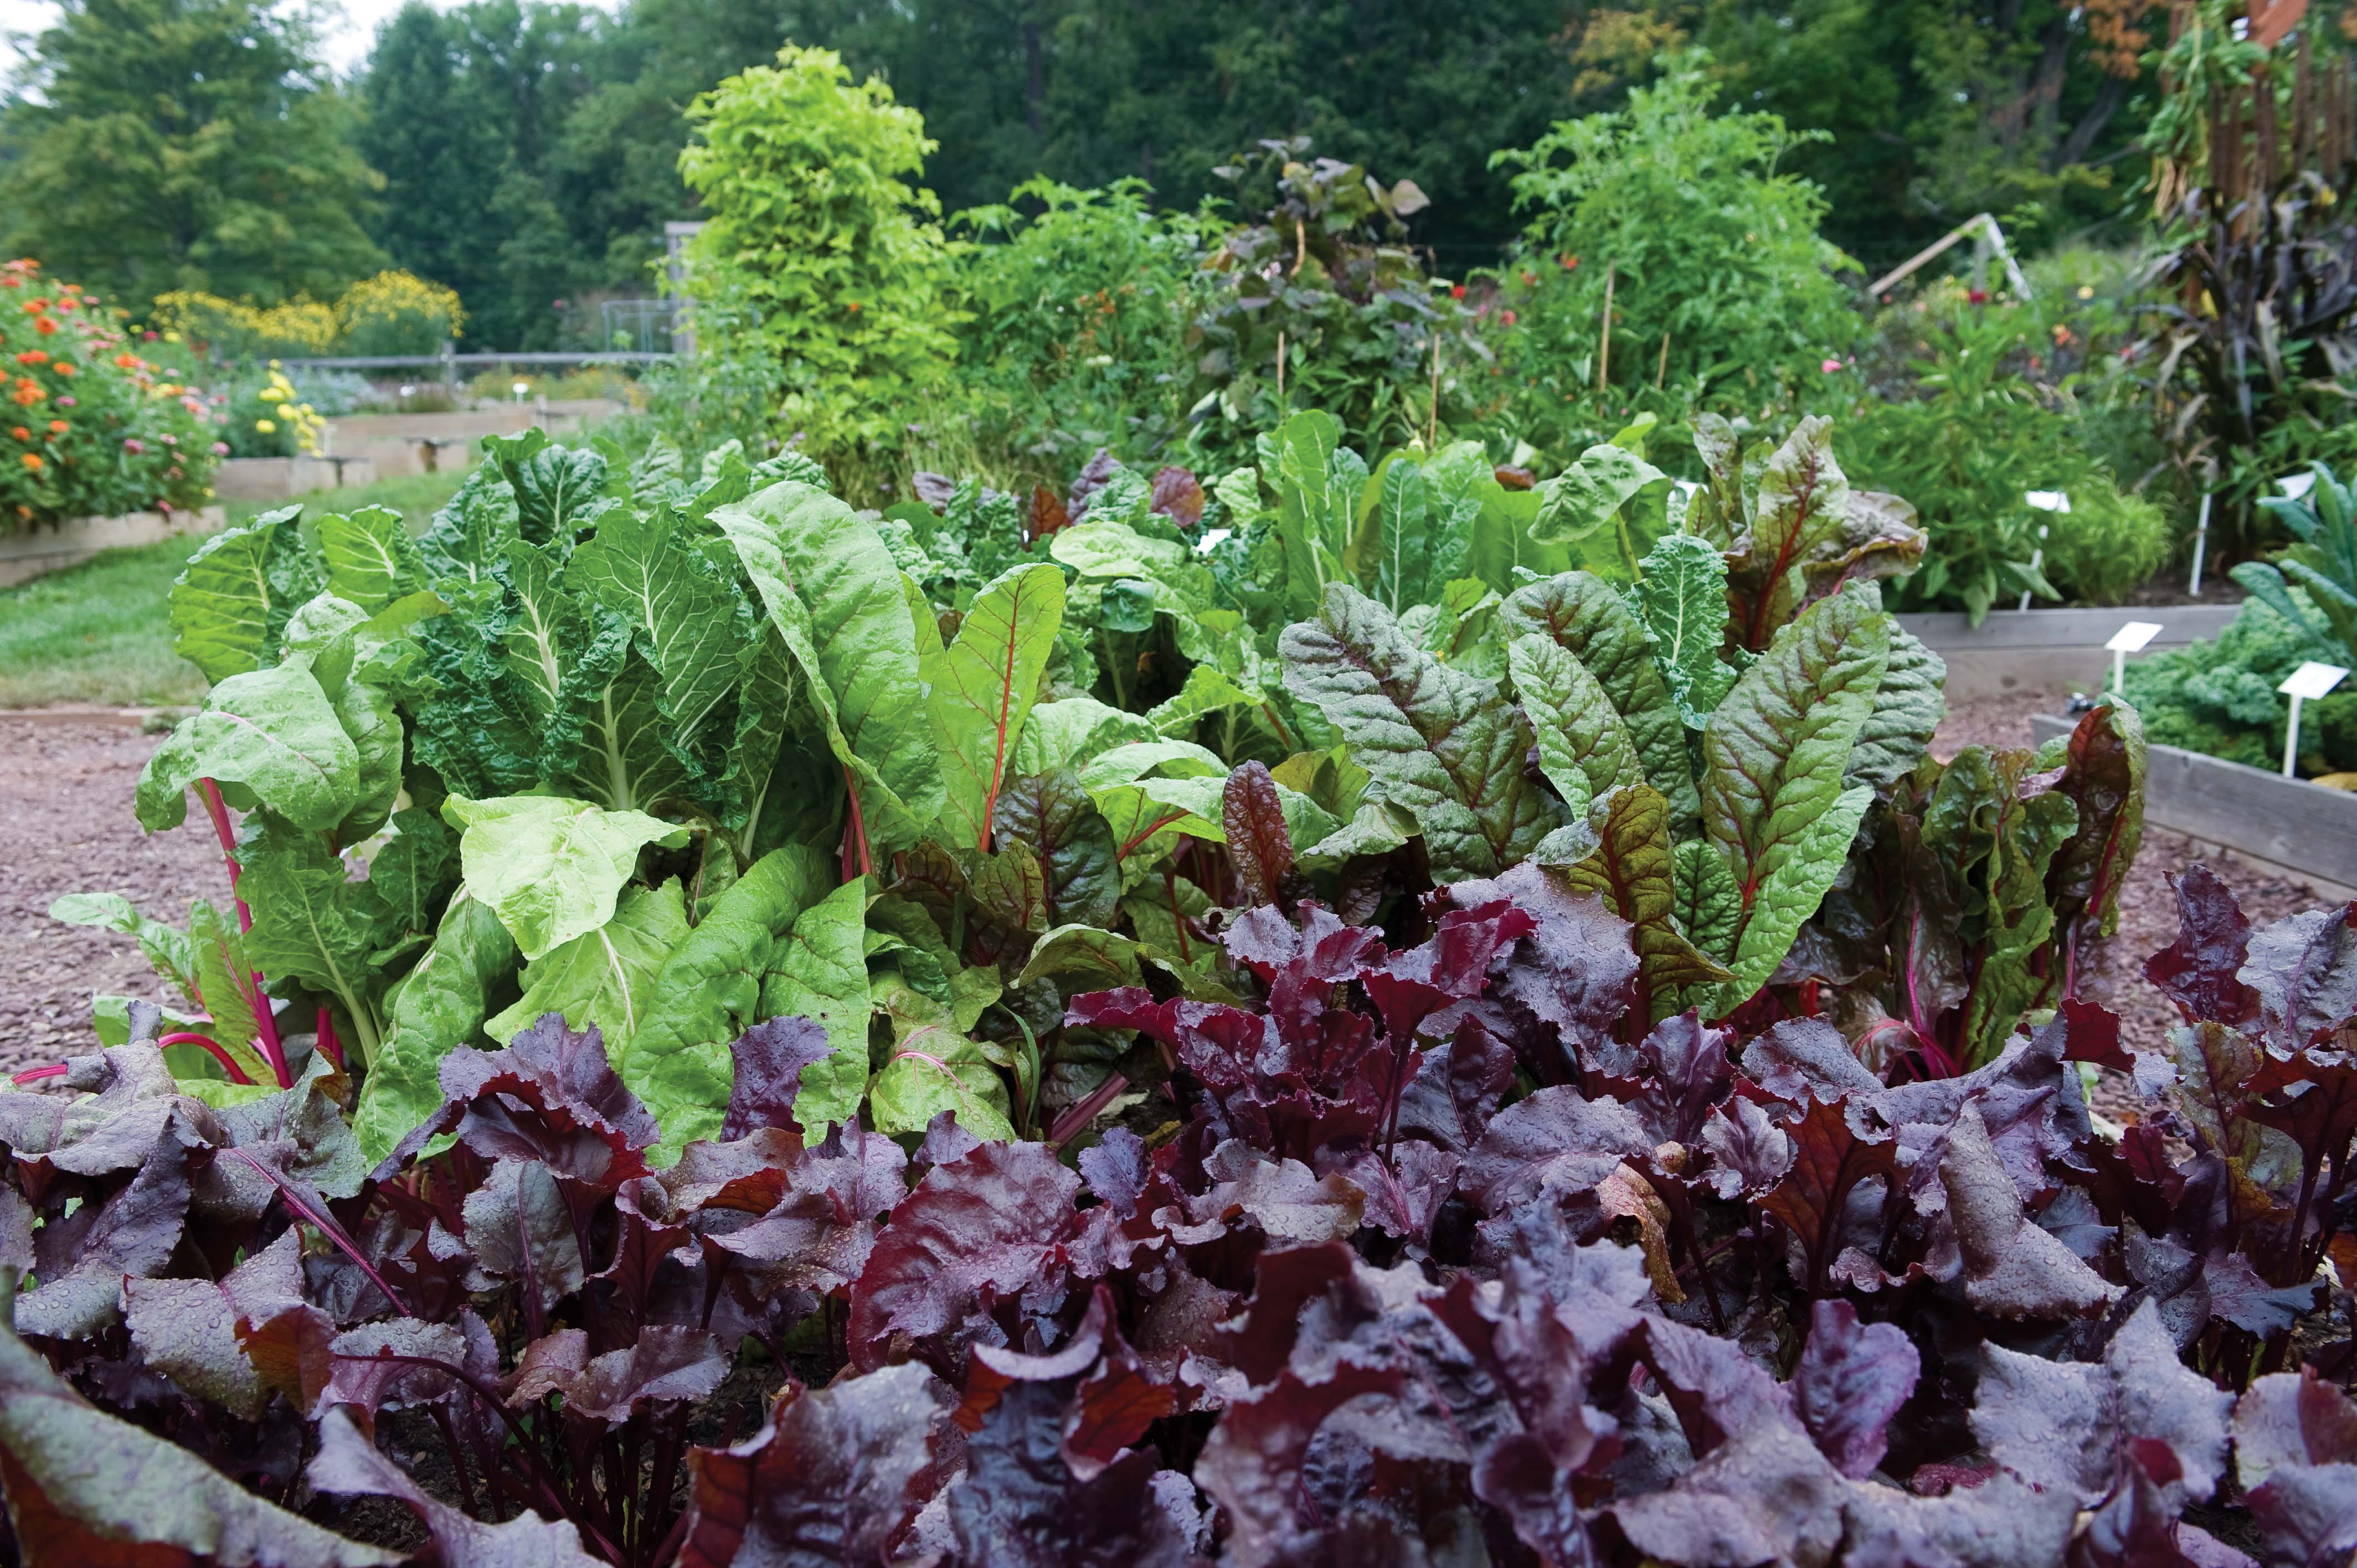 Our Kitchen Garden We The Vegetables Commentary On Our Vegetative State David